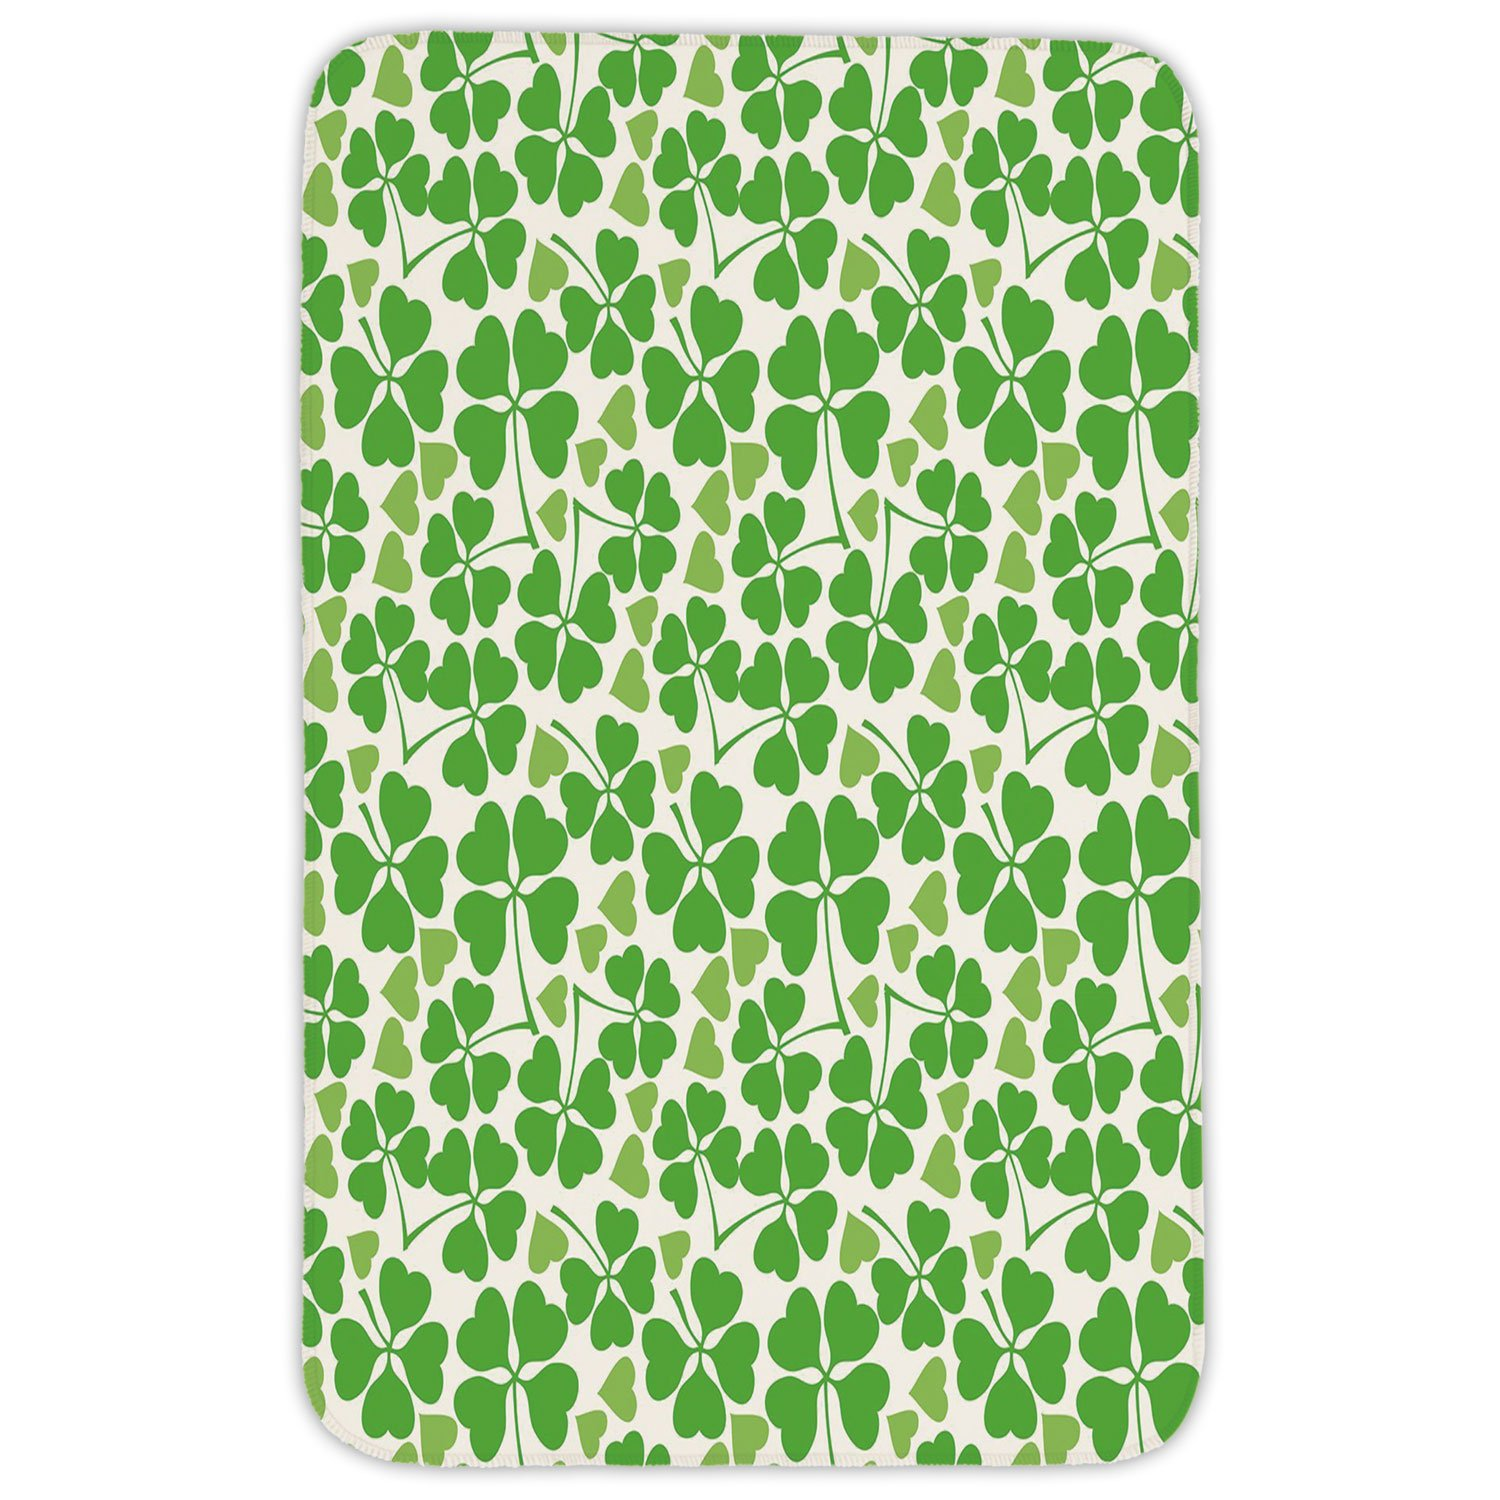 Rectangular Area Rug Mat Rug,Irish,Gaelic Nature Garden Decor Spring Clovers with Cute Hearts Freshness Decorative,Lime Green Pistachio White,Home Decor Mat with Non Slip Backing